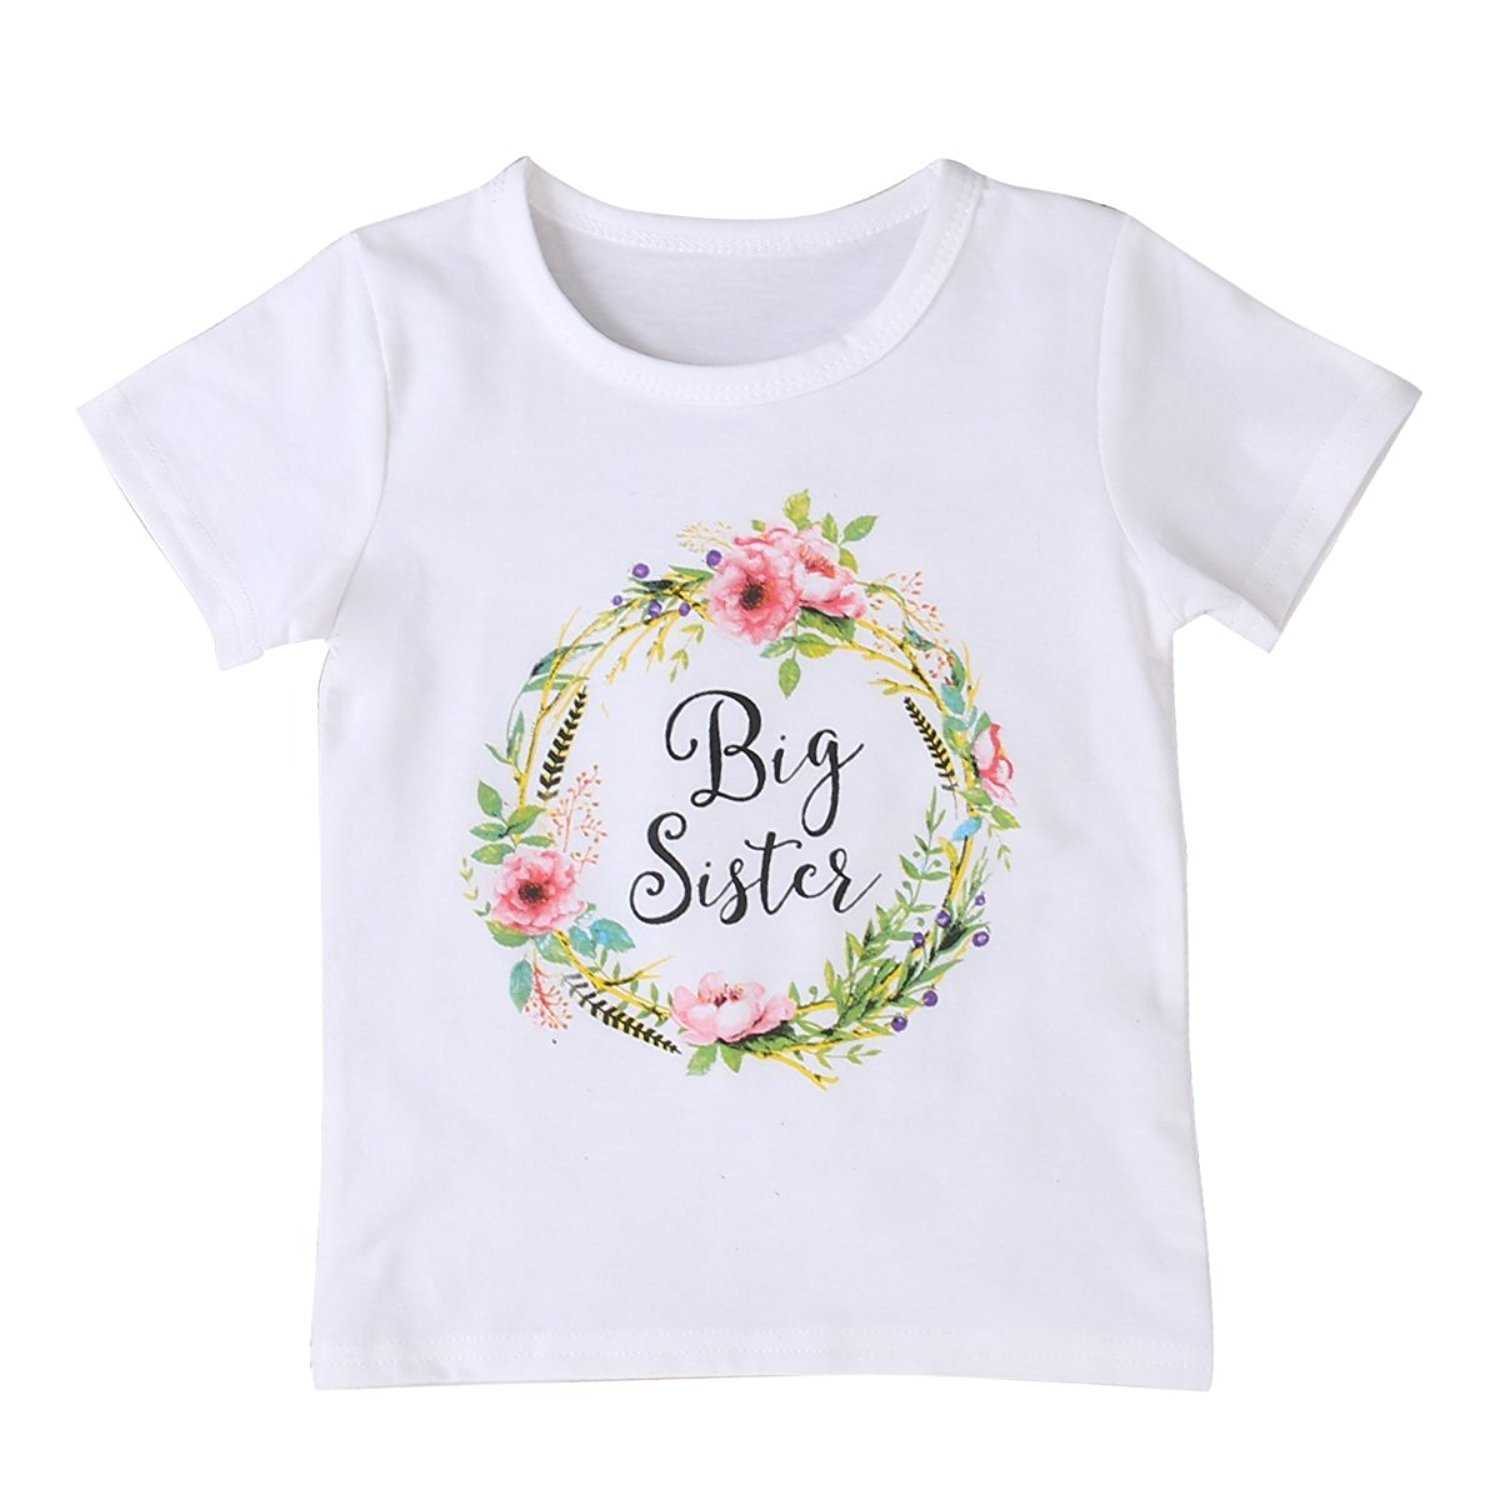 FIZUOXVE Infant Girls Short Sleeve Lovely Floral Print Bodysuit T-Shirt Little Sister Clothes Outfit CL1181